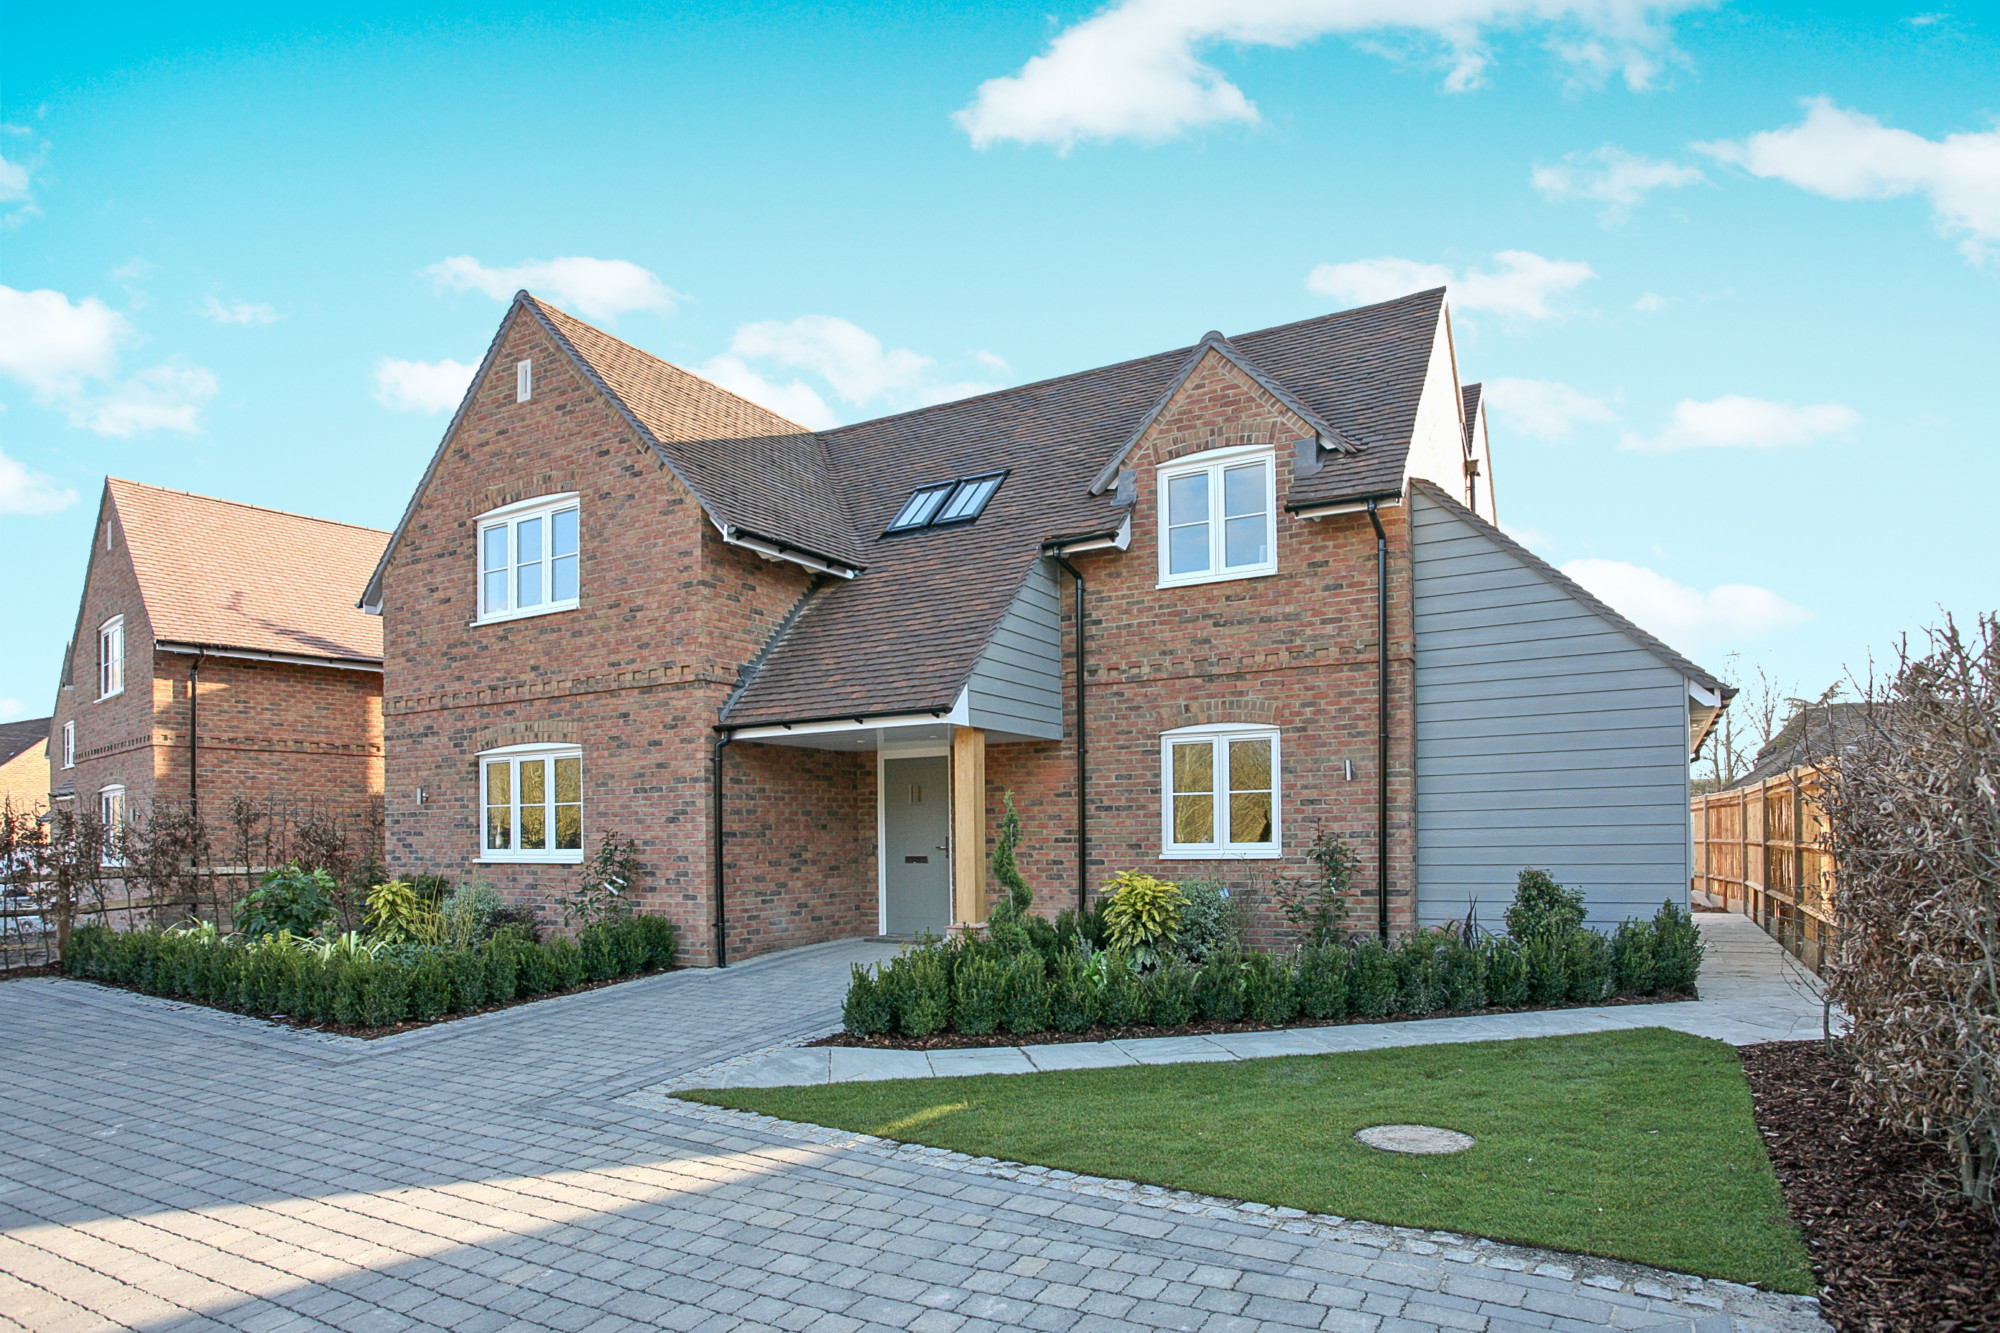 Launched! Show home at Fincham View, Rye Common is open for viewing